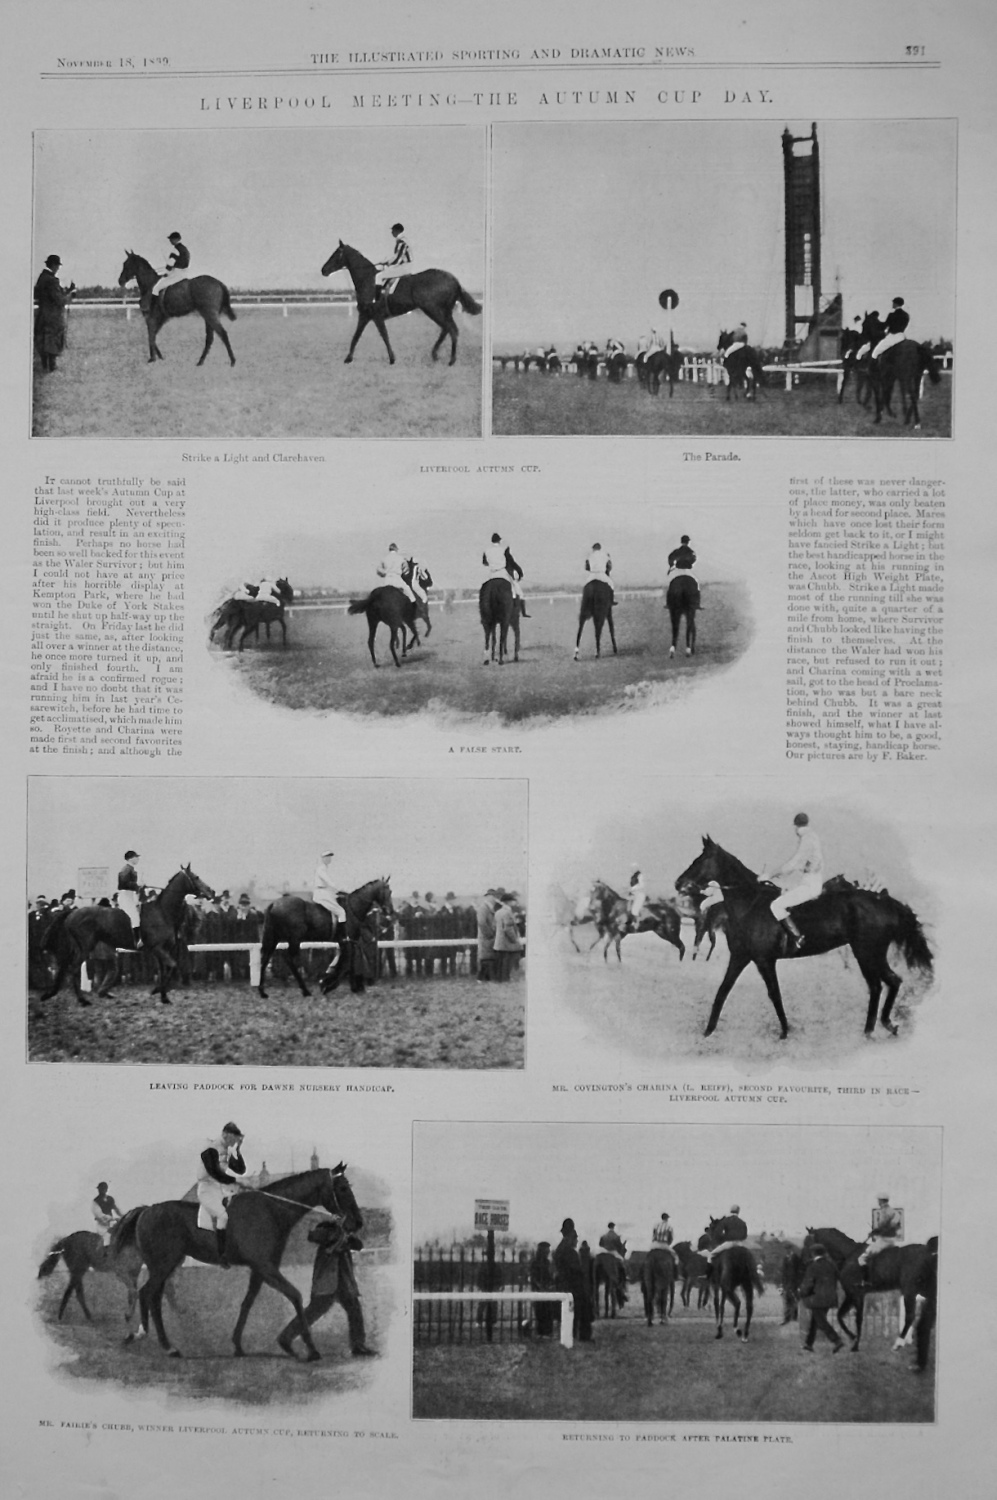 Liverpool Meeting - The Autumn Cup Day. 1899